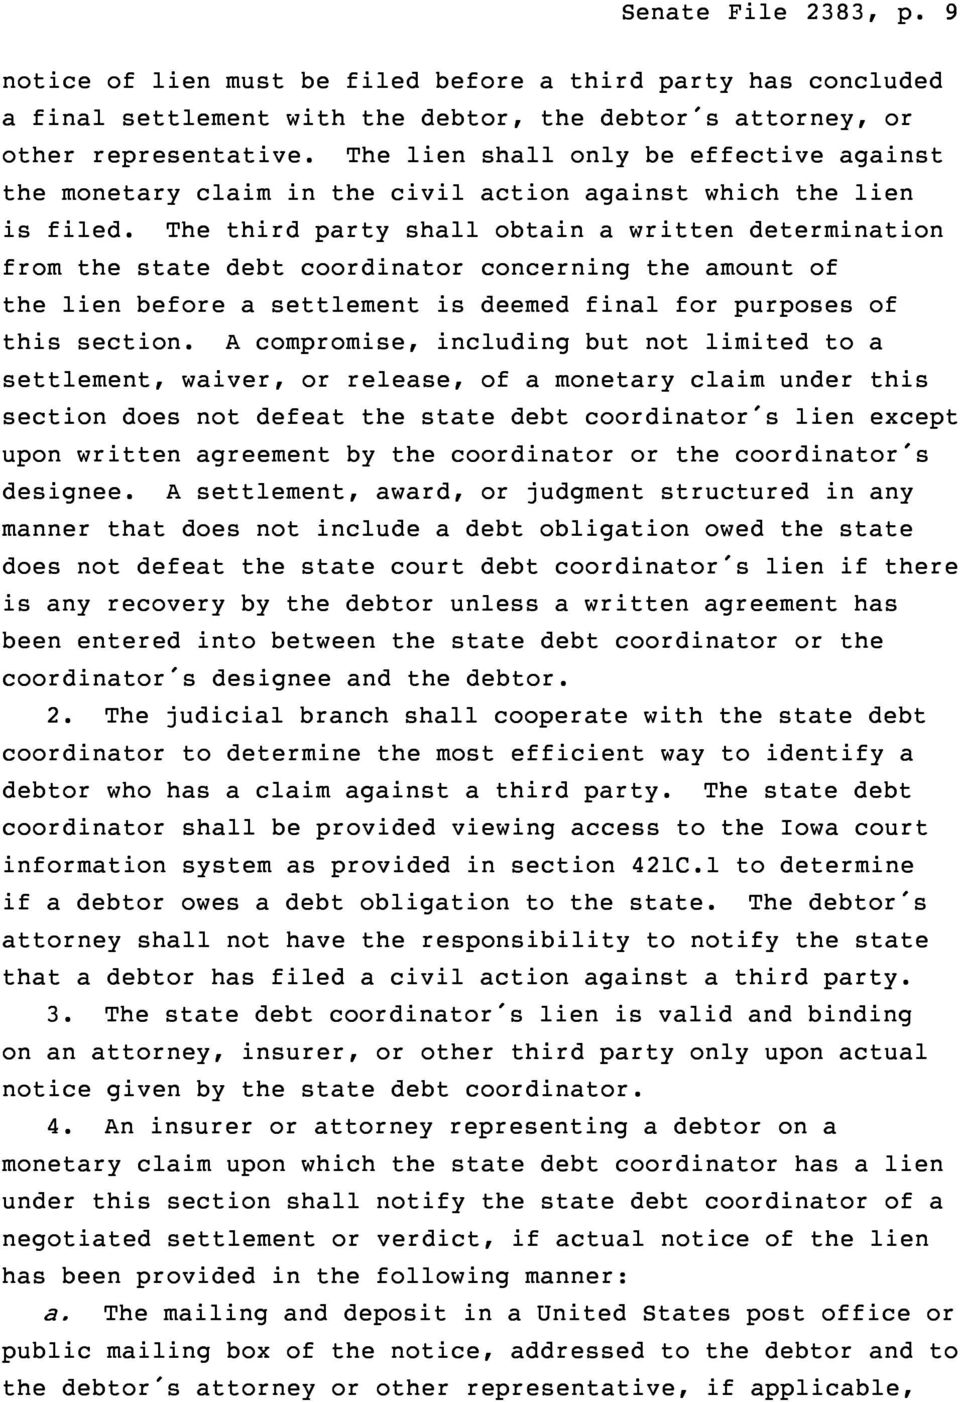 The third party shall obtain a written determination from the state debt coordinator concerning the amount of the lien before a settlement is deemed final for purposes of this section.